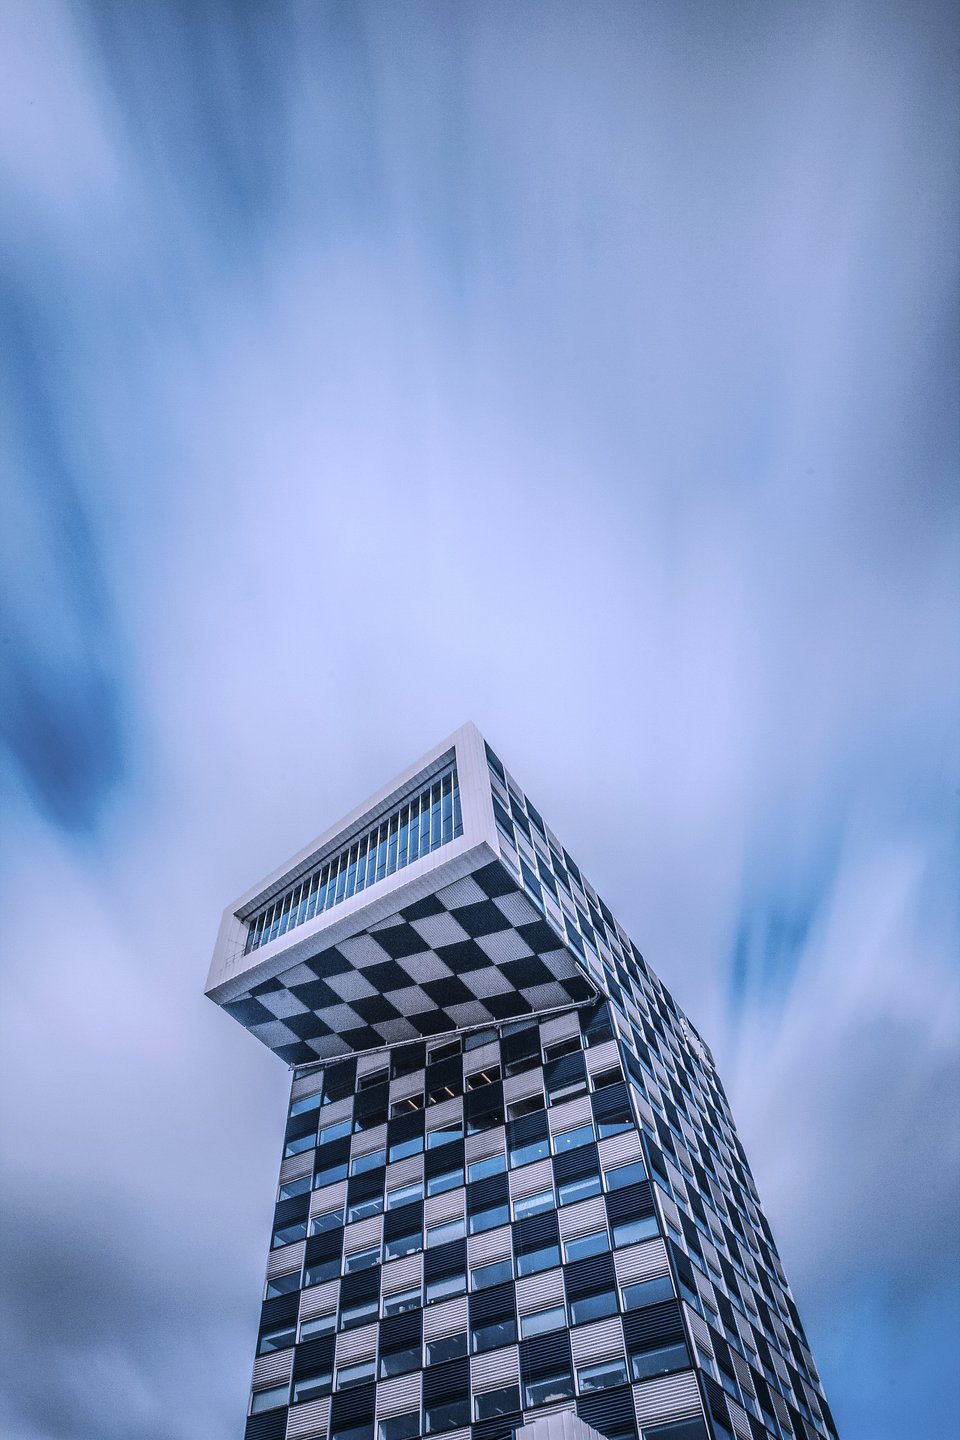 The unique architecture of this building in Milan, Italy stands out among the blue and the moving clouds of the sky behind it. (Rockson Armaah/Agora)